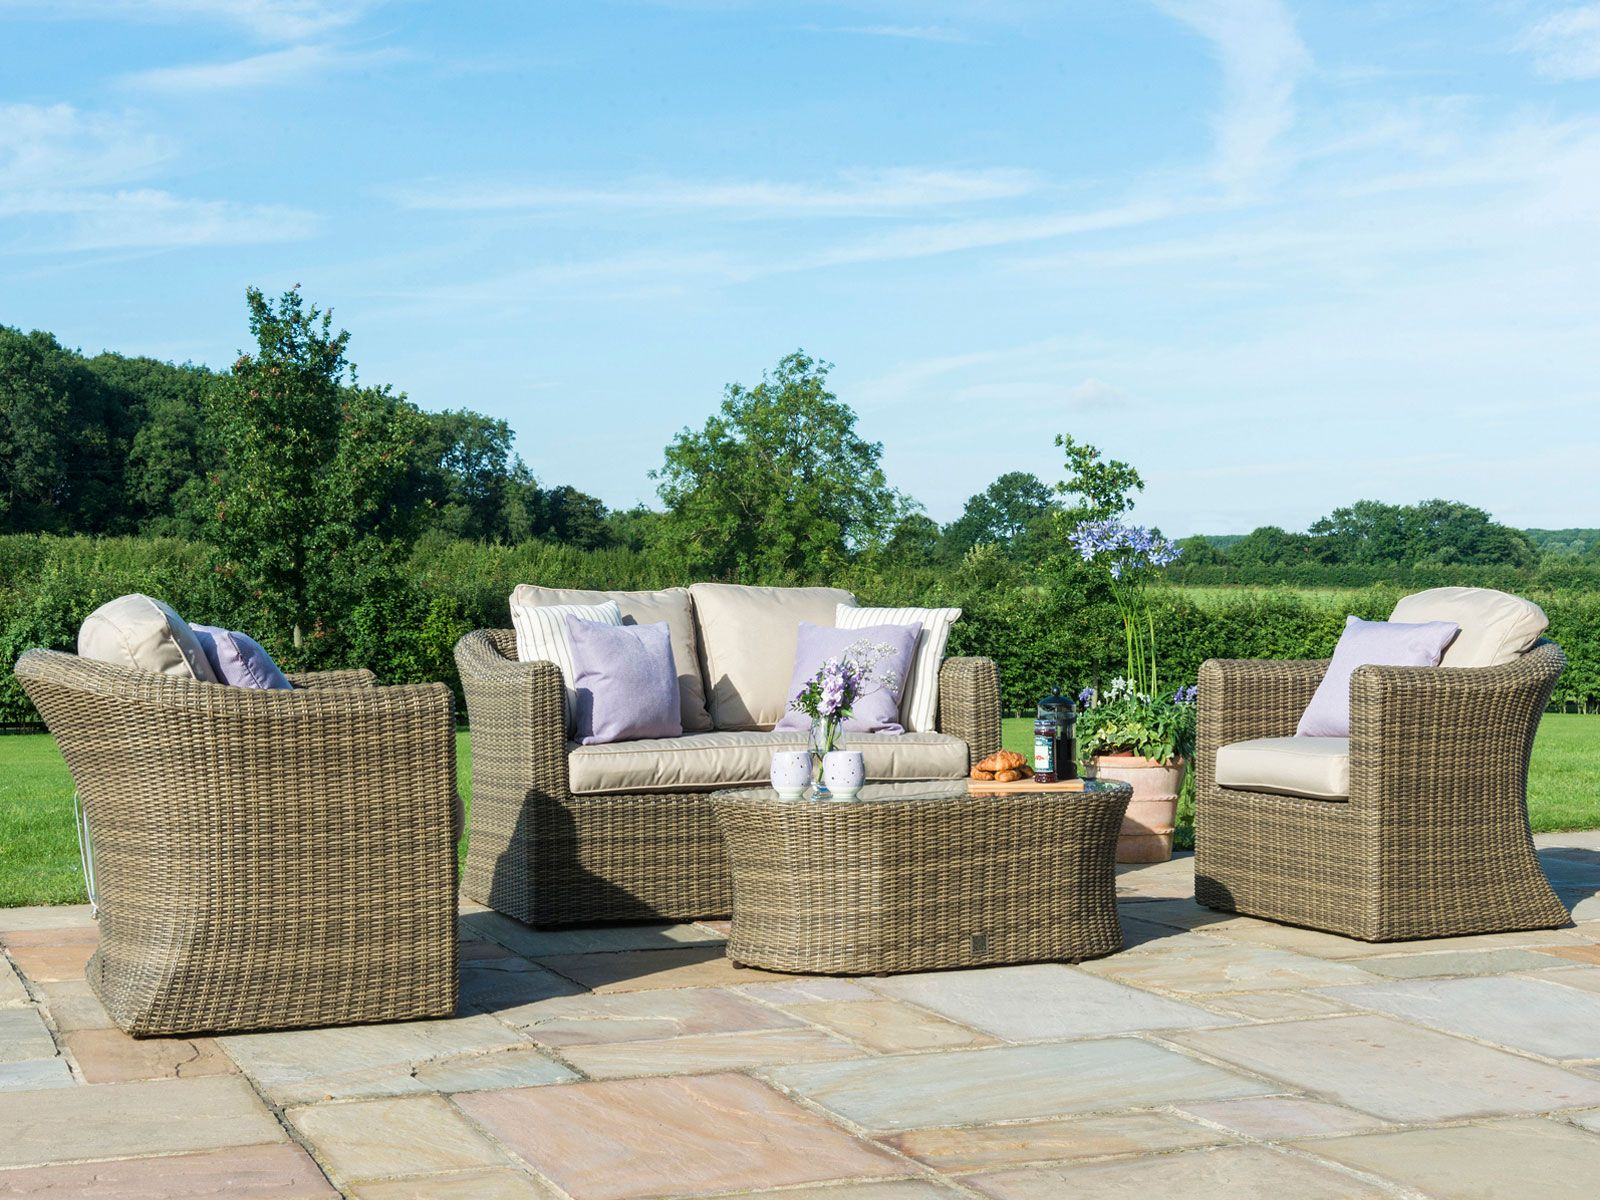 Garden Sofa Two Seater Relax And Enjoy The Outdoors With This All Weather Rattan Garden